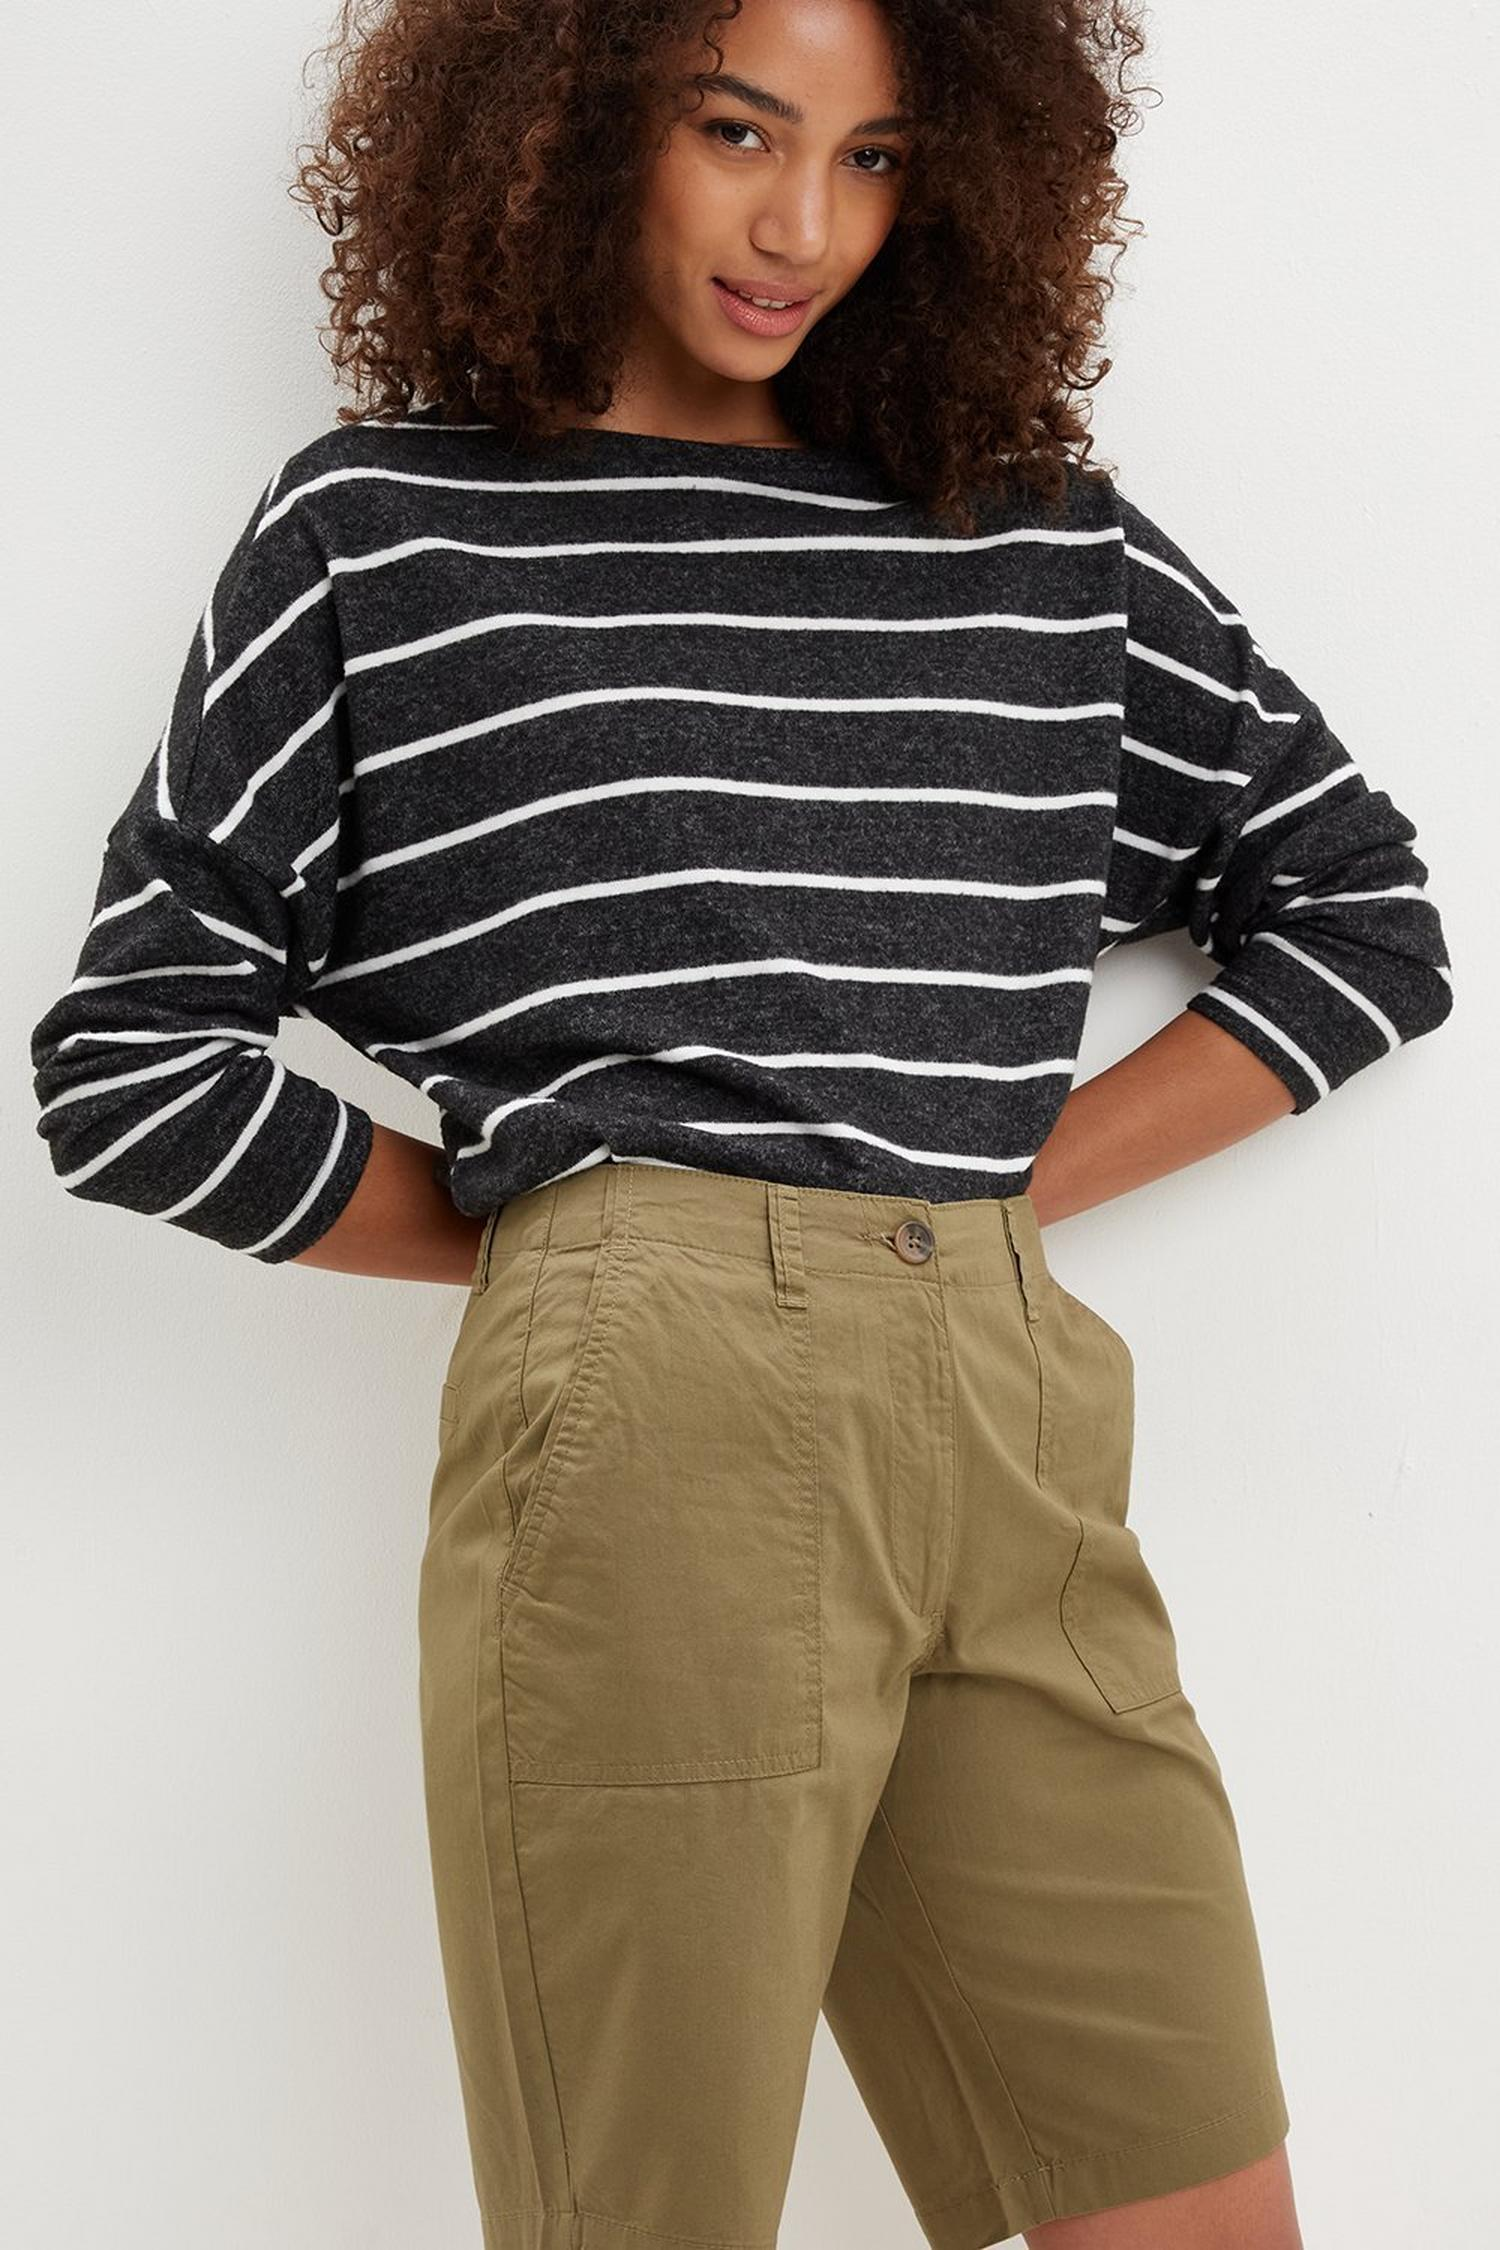 130 Khaki Poplin Knee Shorts image number 2